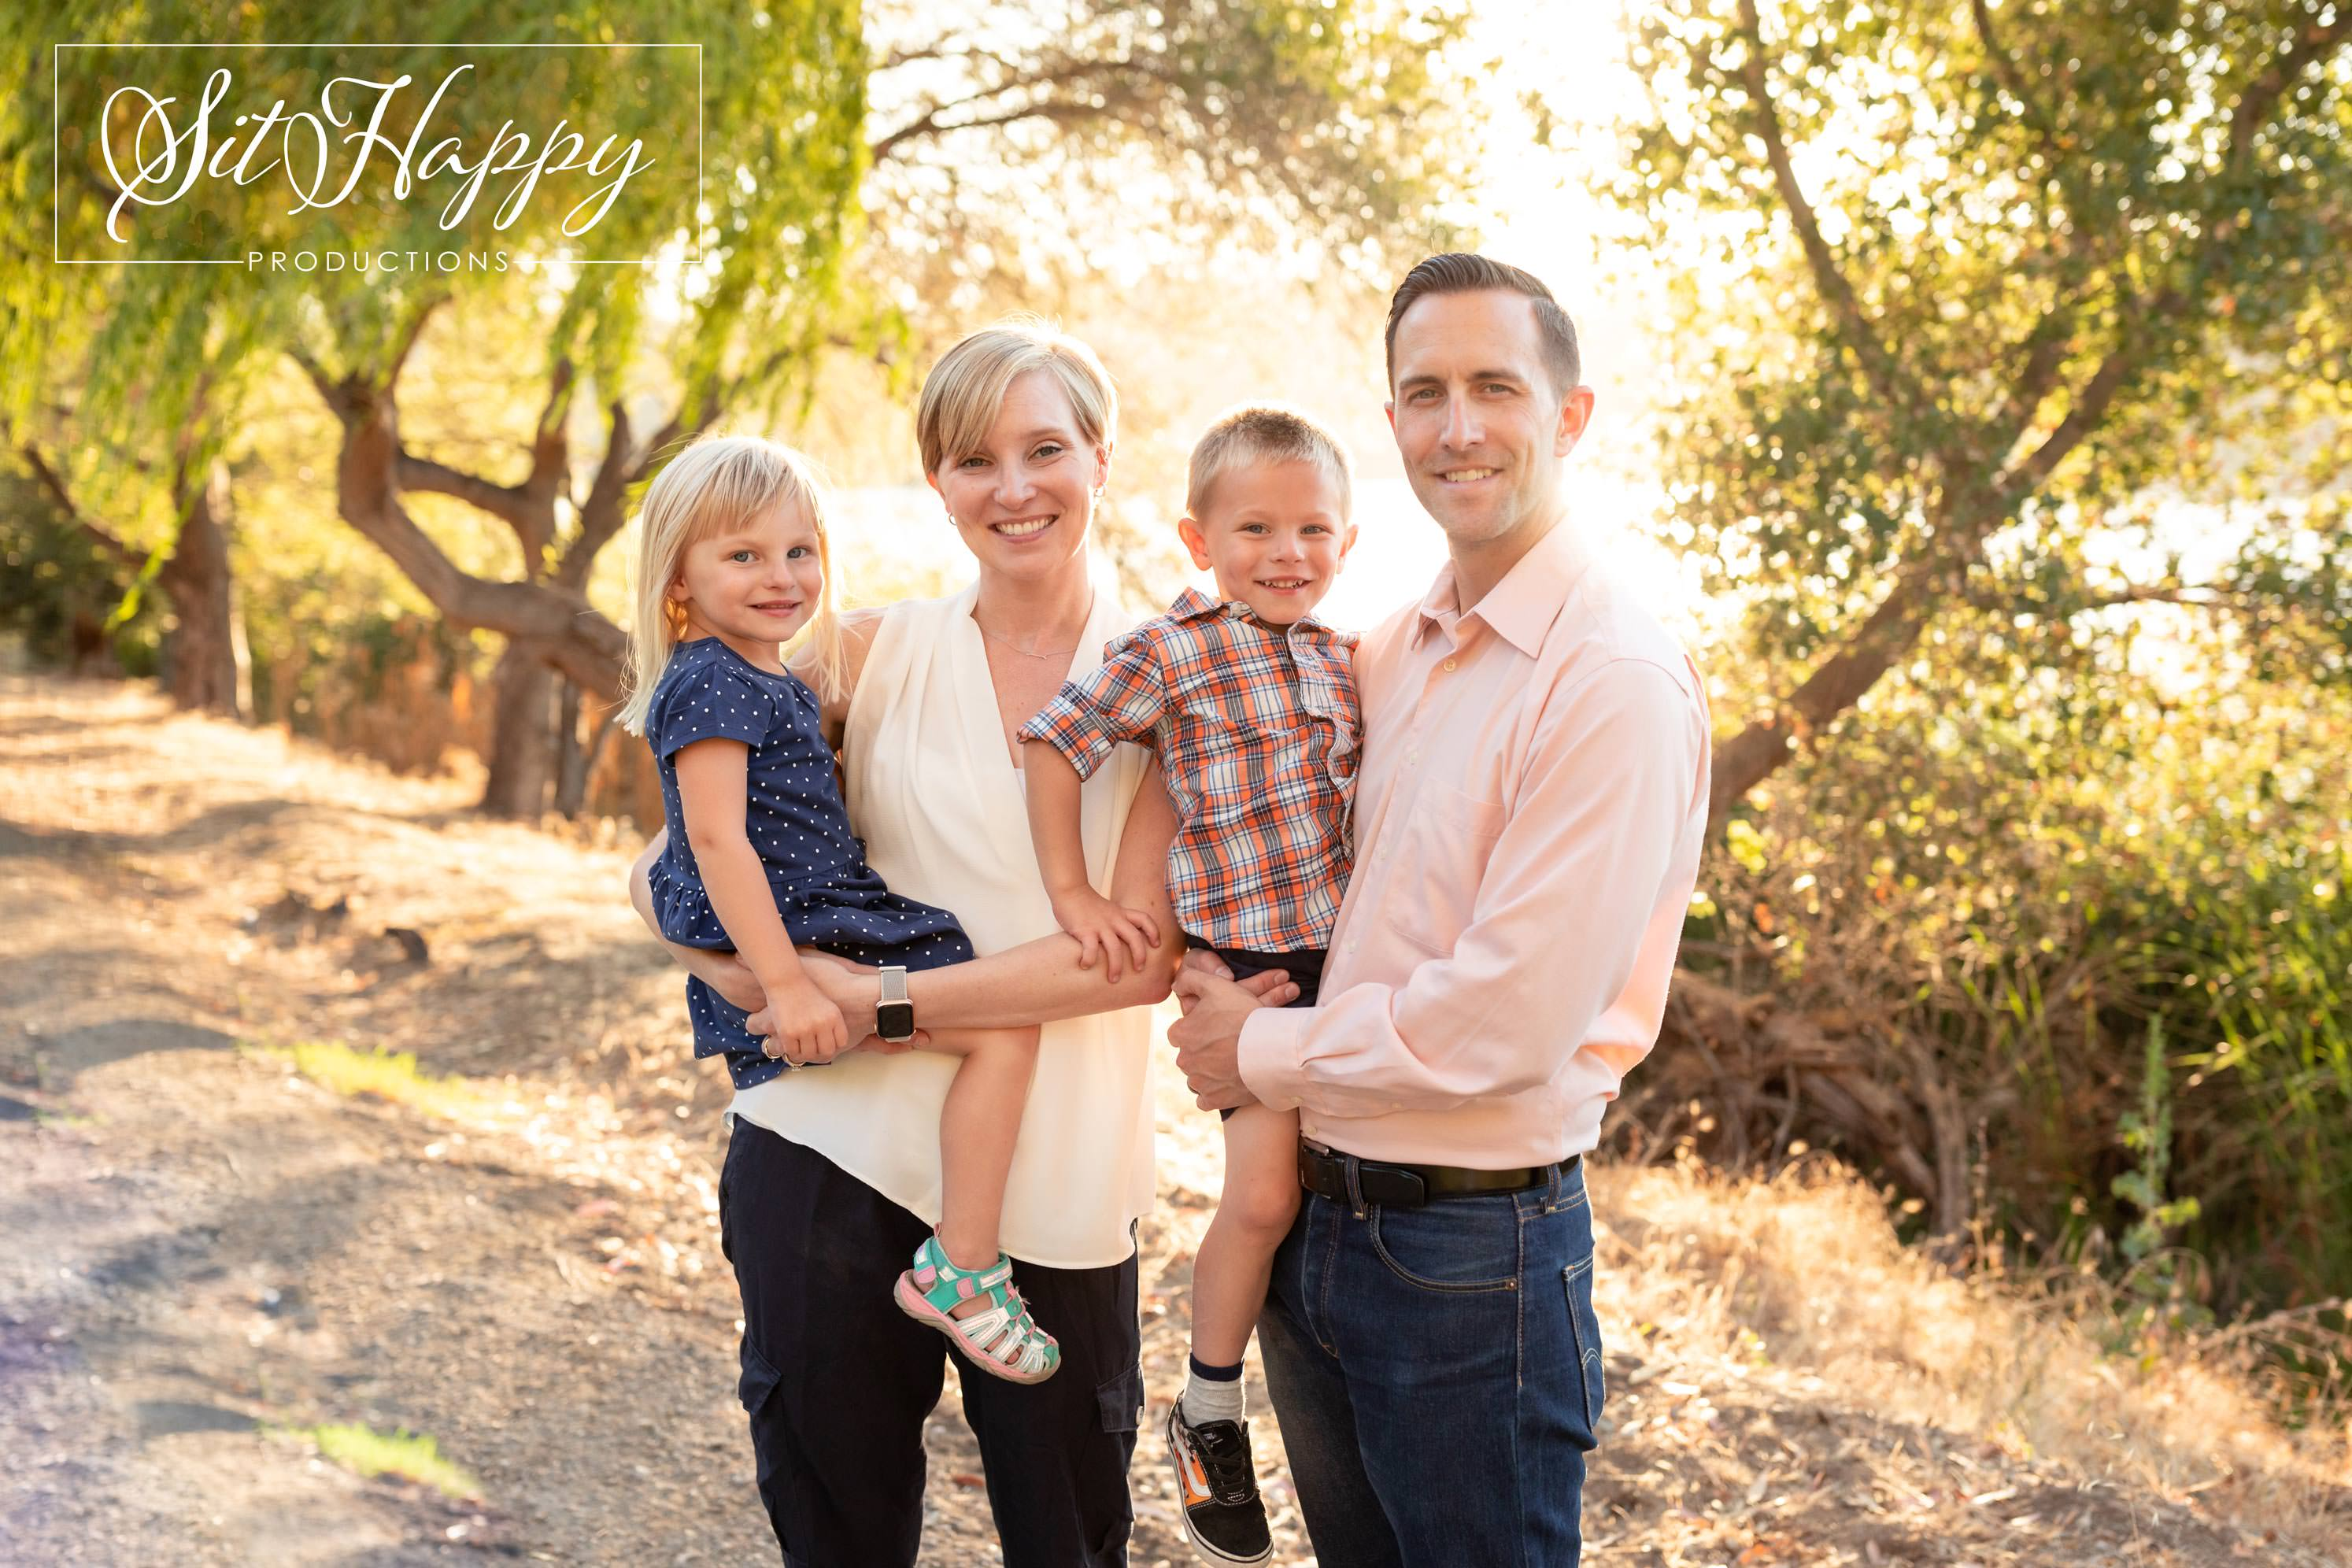 Best-Outdoor-Family-Photo-Session-Locations-in-San-Jose-CA-Vasona-Dam-Gardens-Family-Photography-SitHappyProductions